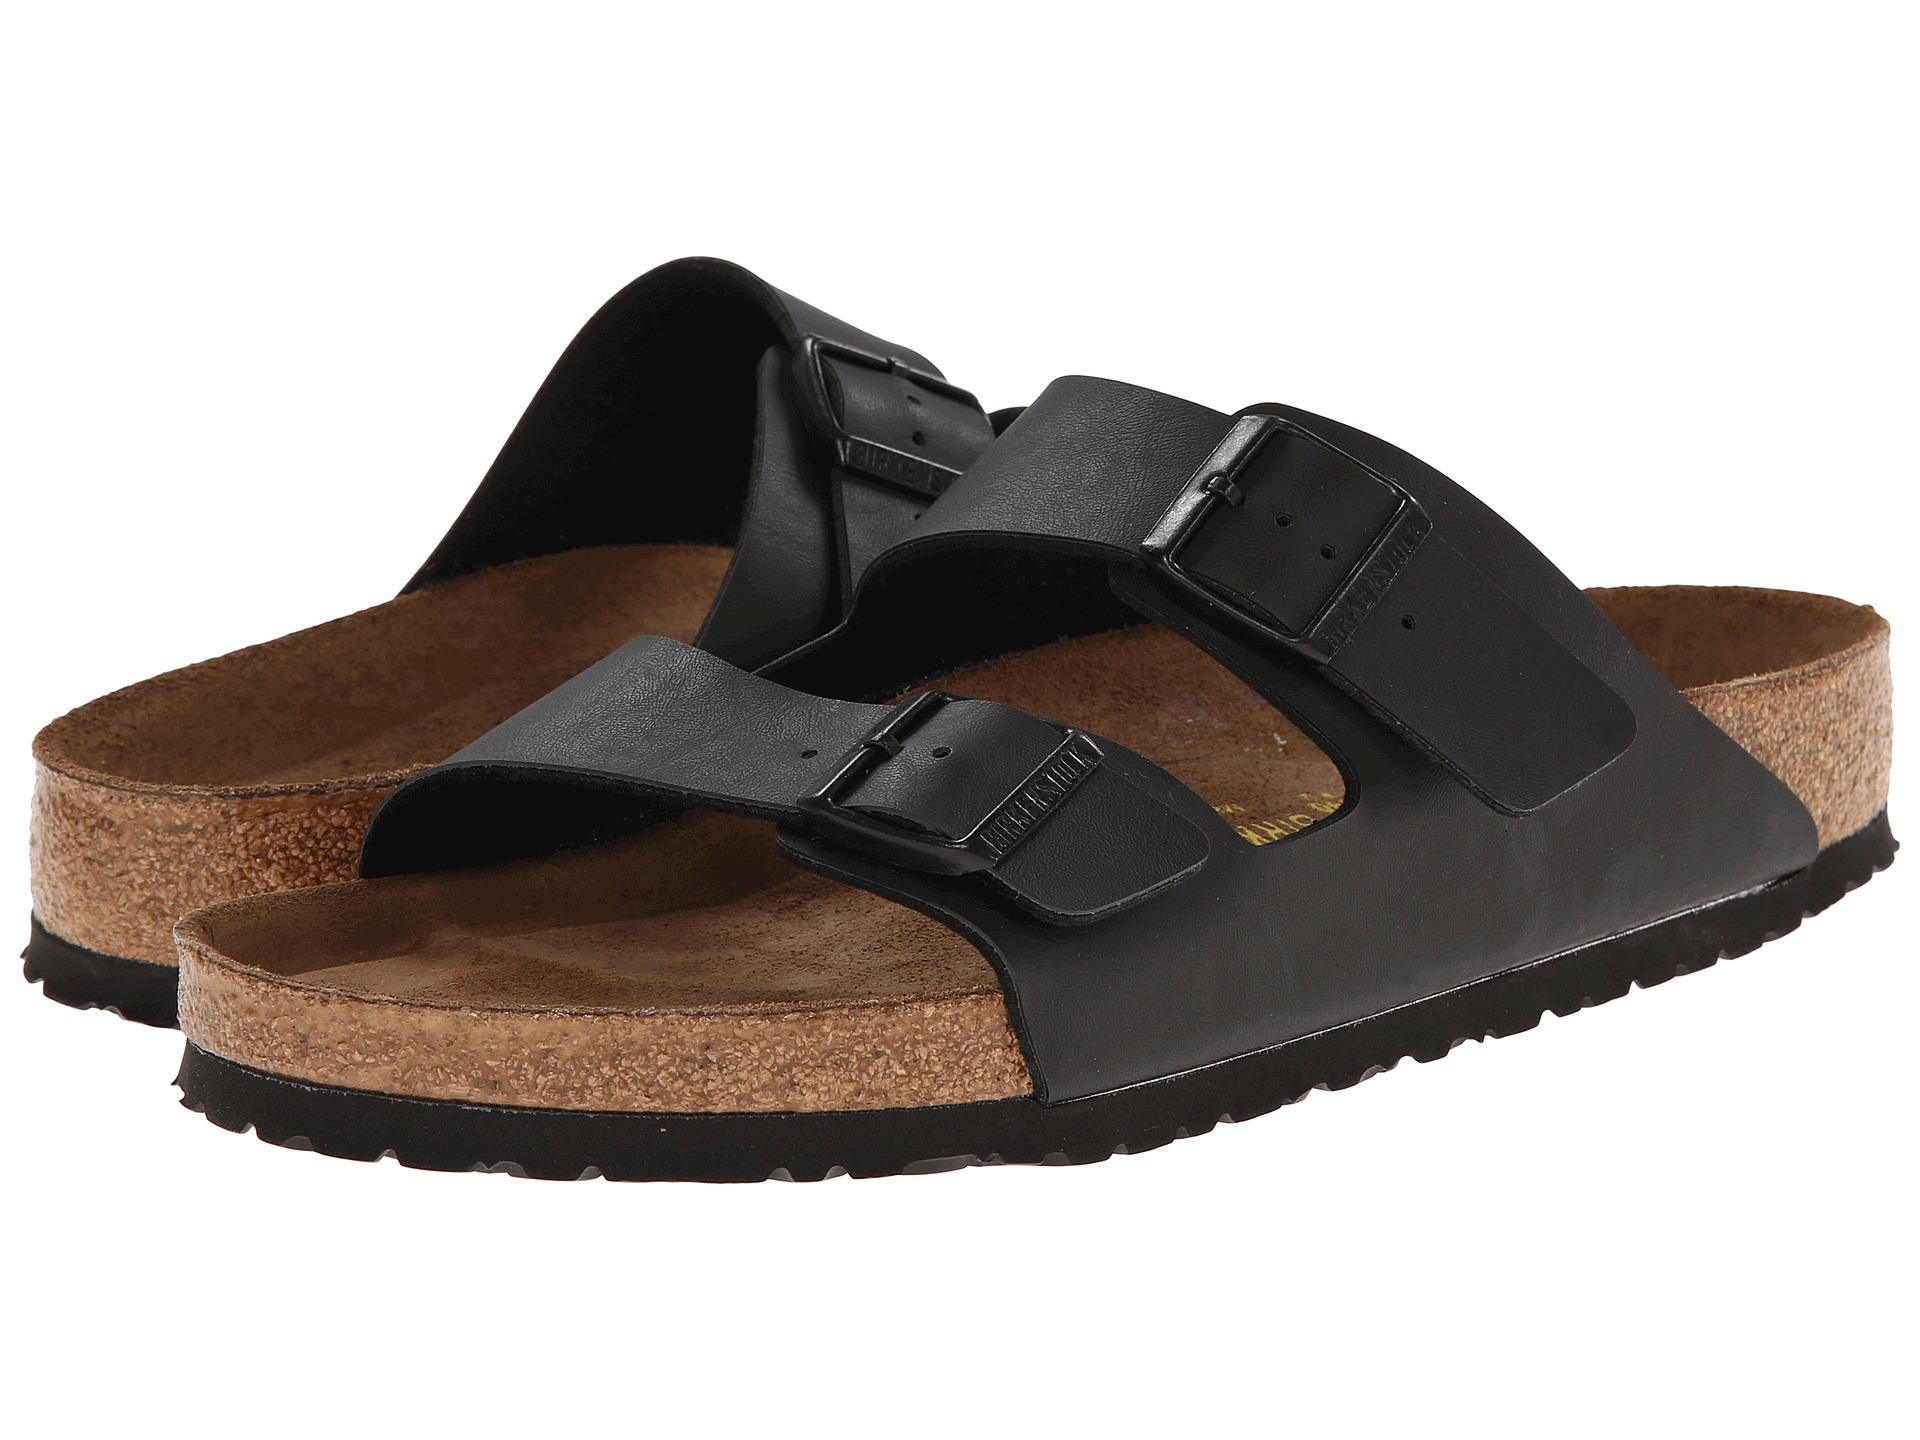 Birkenstock Men's 'Arizona Soft' Sandal 0HlhagHL